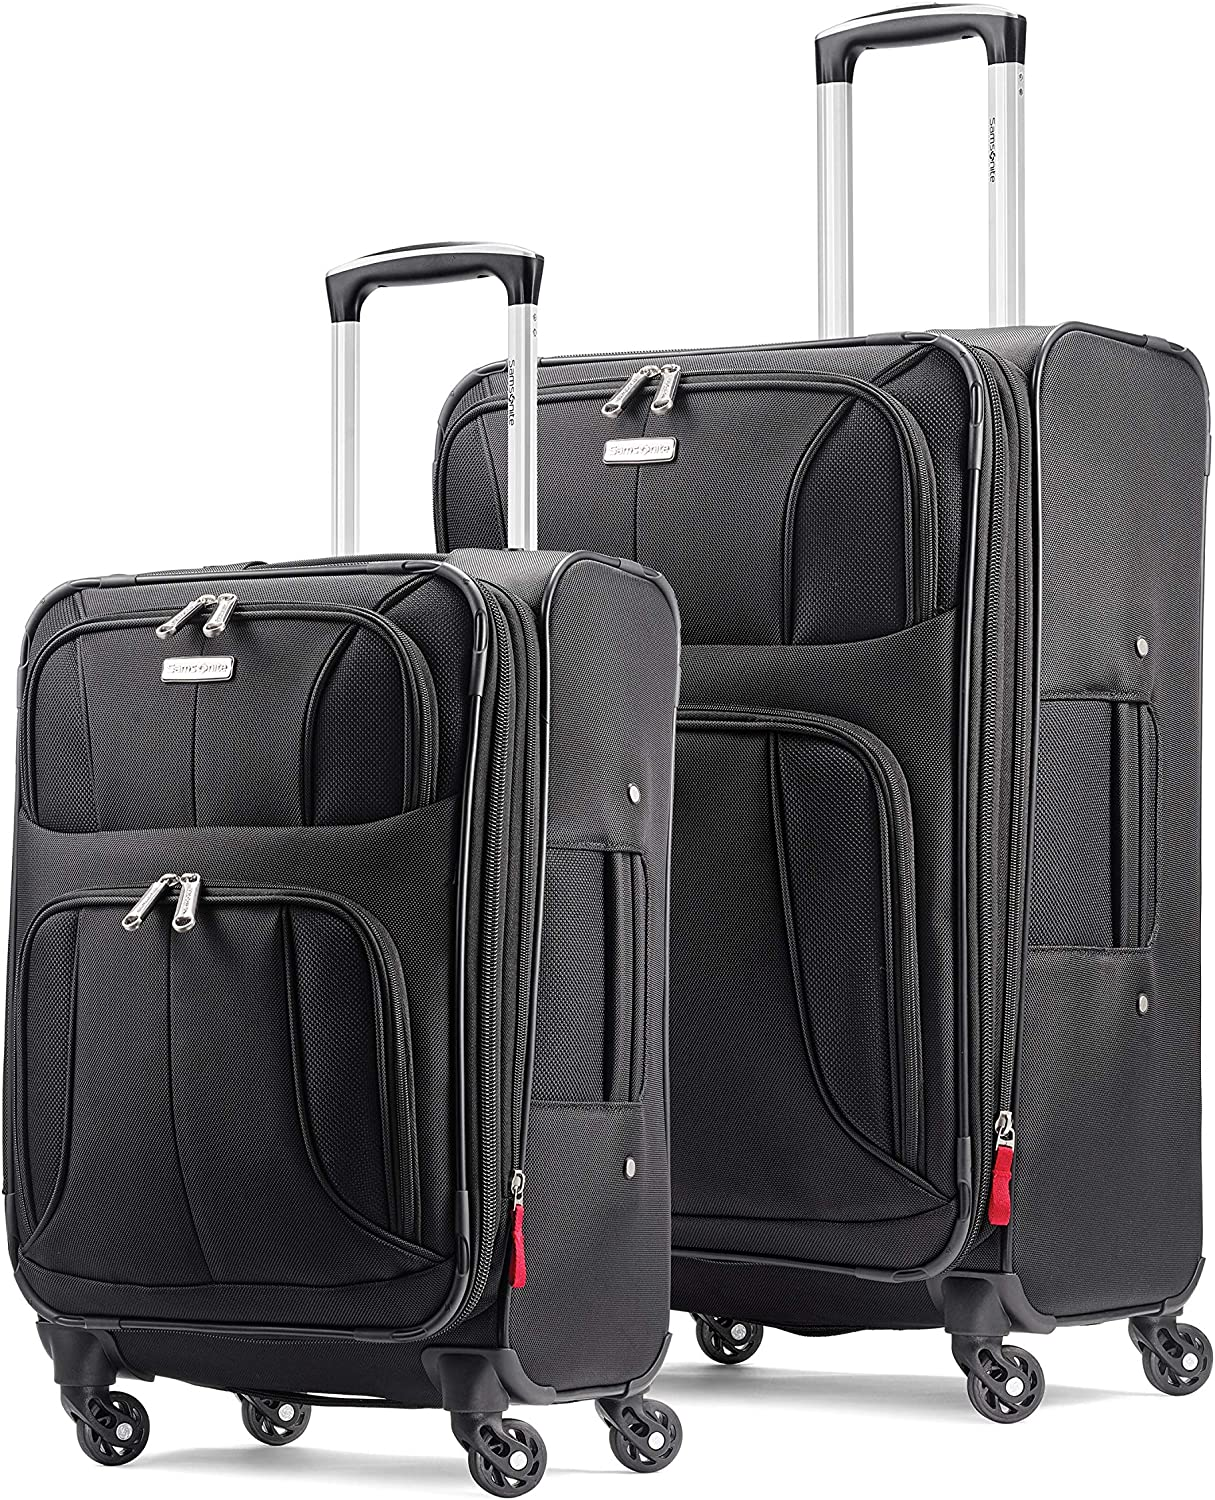 Samsonite Aspire xLite Expandable Softside 2-Piece Luggage Set 20 29 with Spinner Wheels, Black